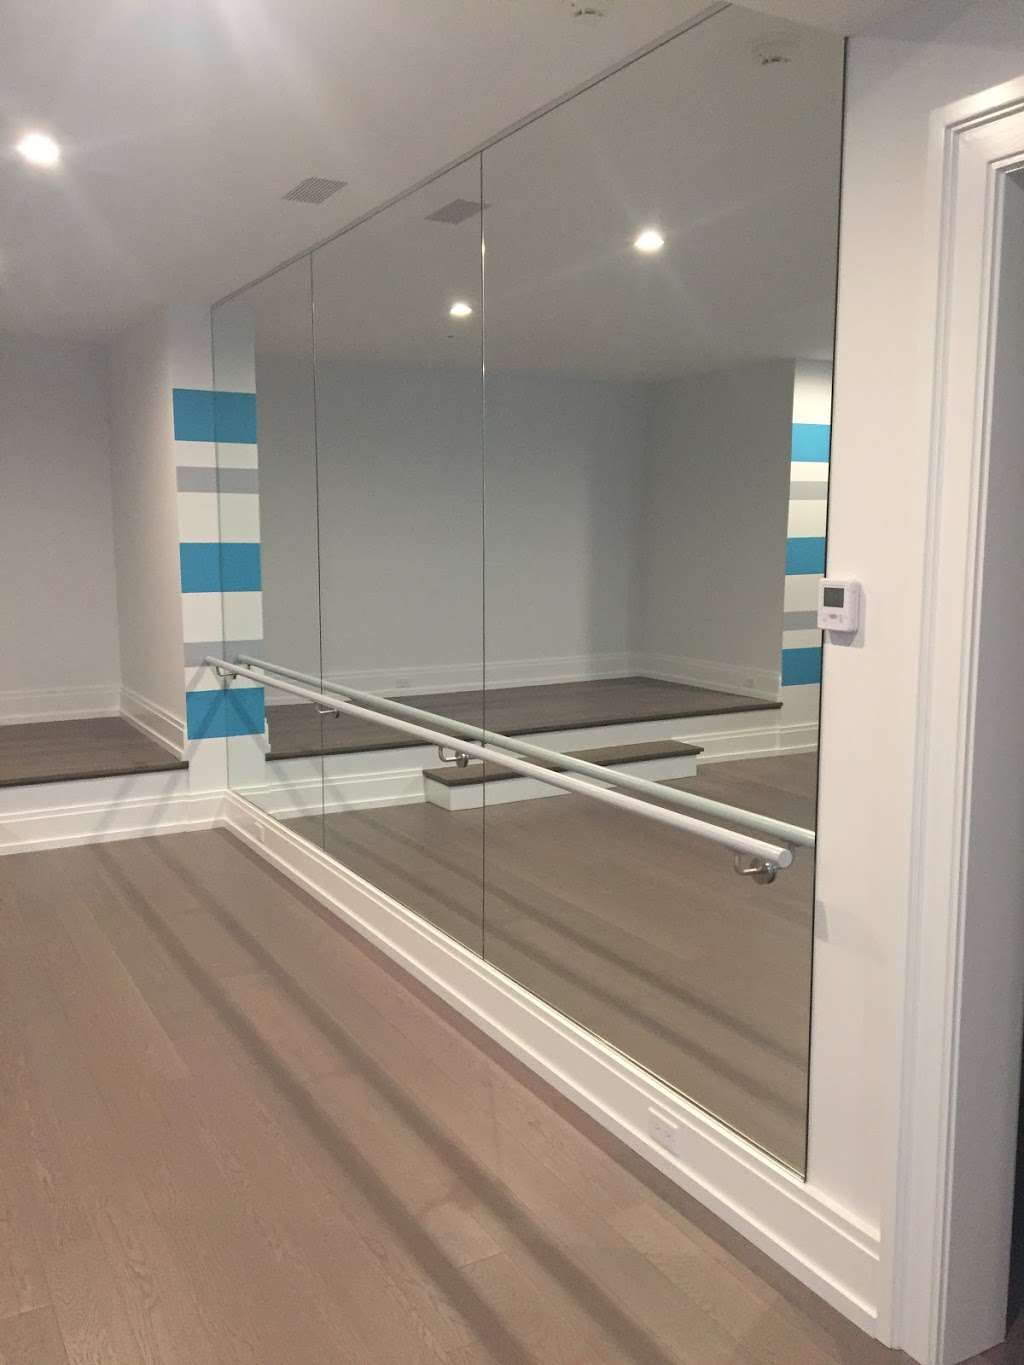 Glass Contractors LLC - store  | Photo 8 of 9 | Address: 10 Turnberry Ln Unit 2, Sandy Hook, CT 06482, USA | Phone: (203) 840-1602